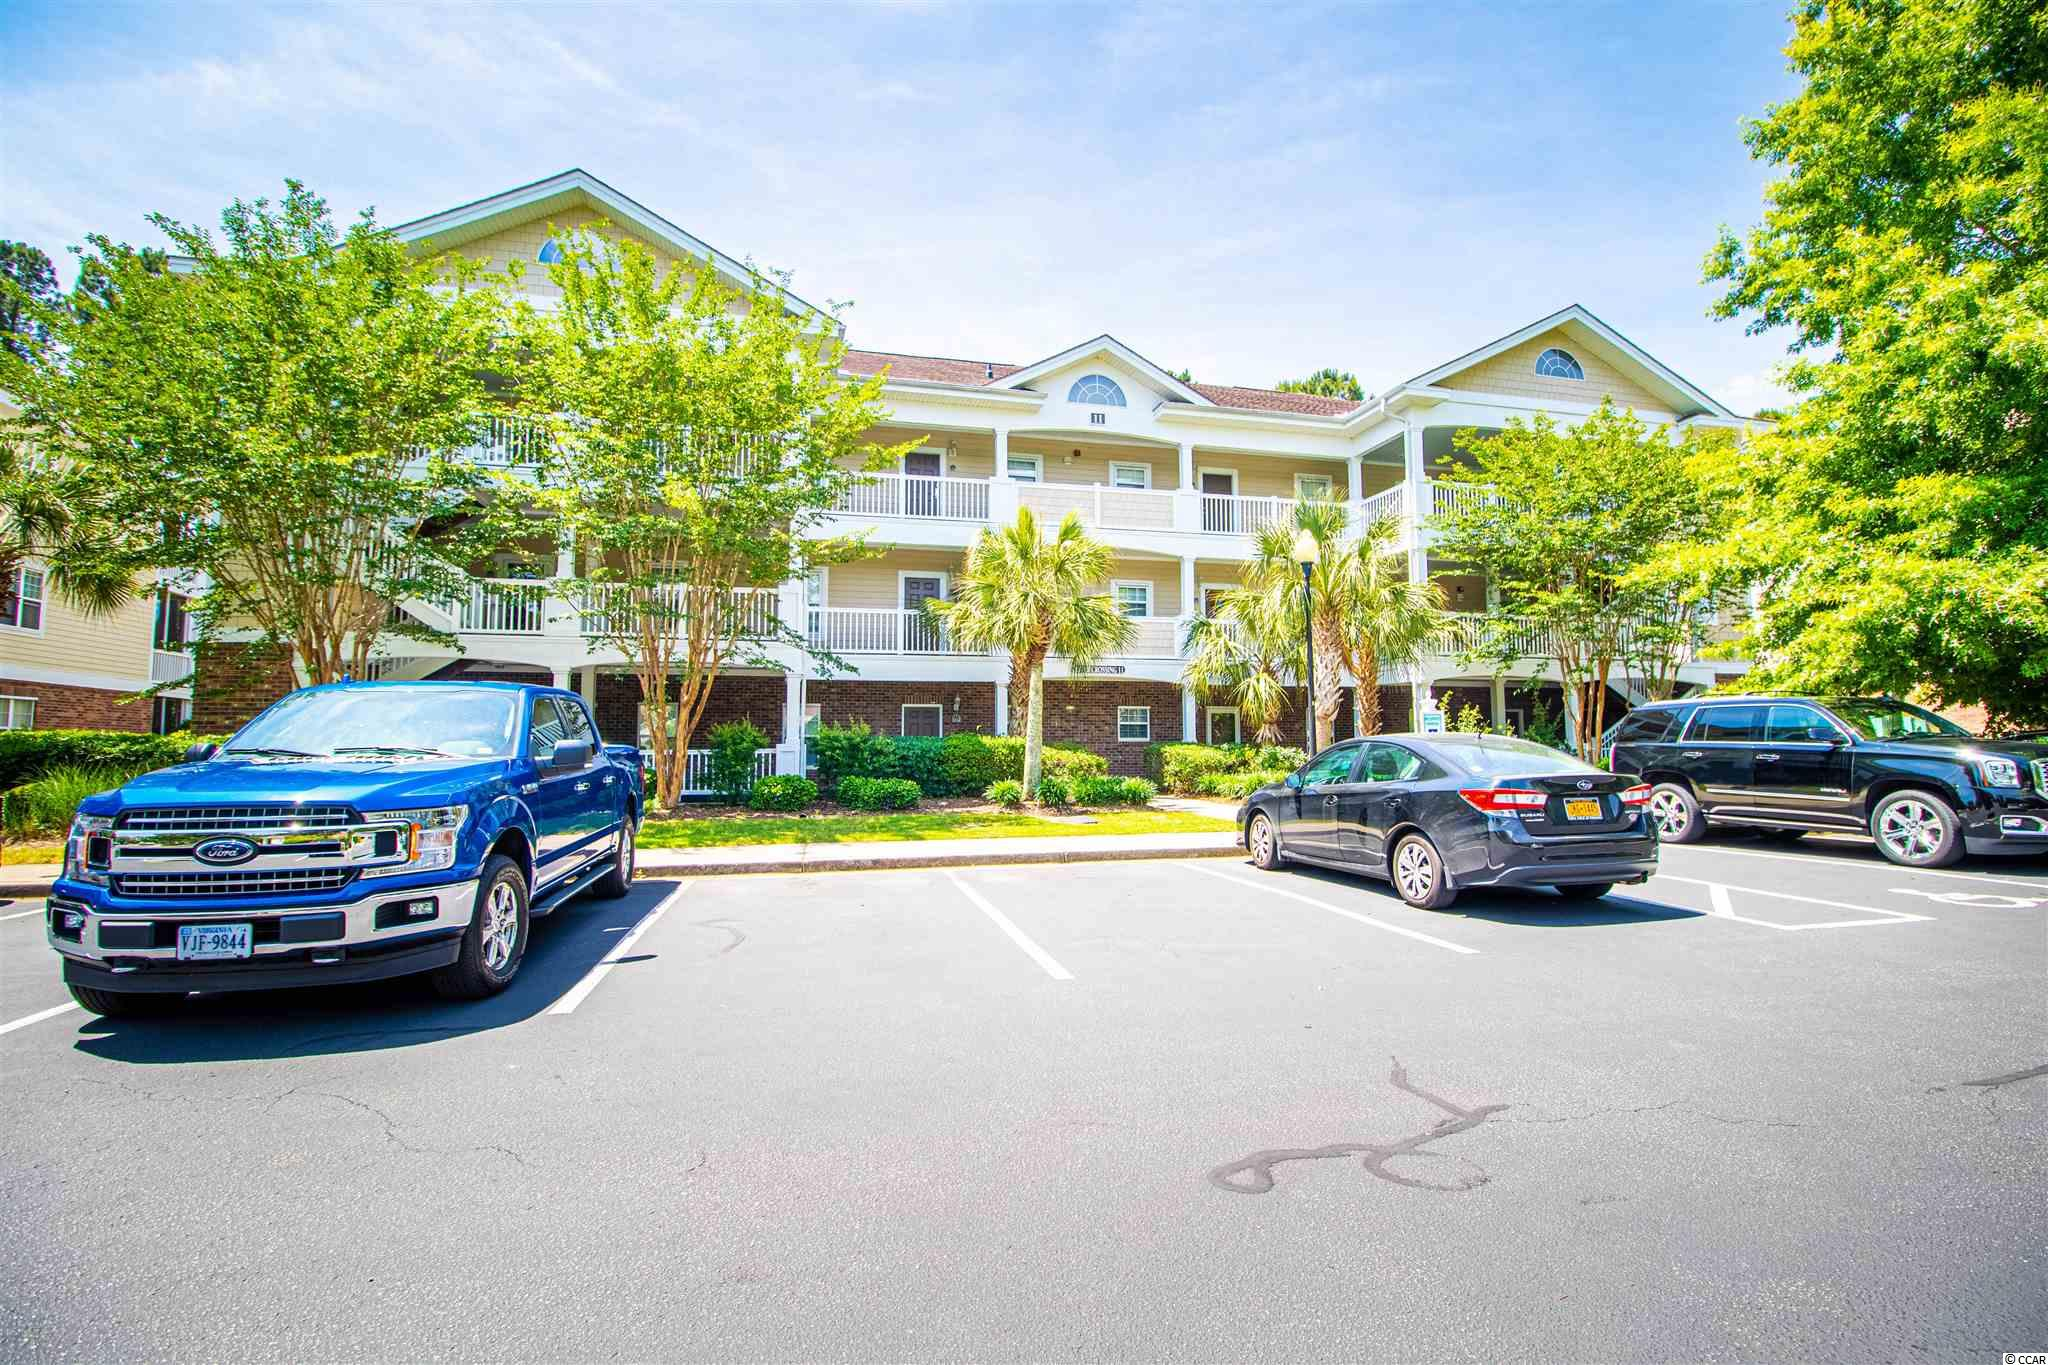 Welcome to carefree living that is convenient to everything! This FIRST FLOOR 2 bedroom and 2 full bath condo is directly across from the pool and ready to move right in! It has huge windows that bring in an abundance of natural light! It is even mostly furnished! Sit on your private back covered patio and enjoy the privacy and golf course views, then walk over to everything at Barefoot Landing and enjoy a cool evening stroll home. The HVAC was replaced in 2017 and the water heater, microwave, and refrigerator, are all new! There is nothing that this unit needs! Call the agent with any questions.